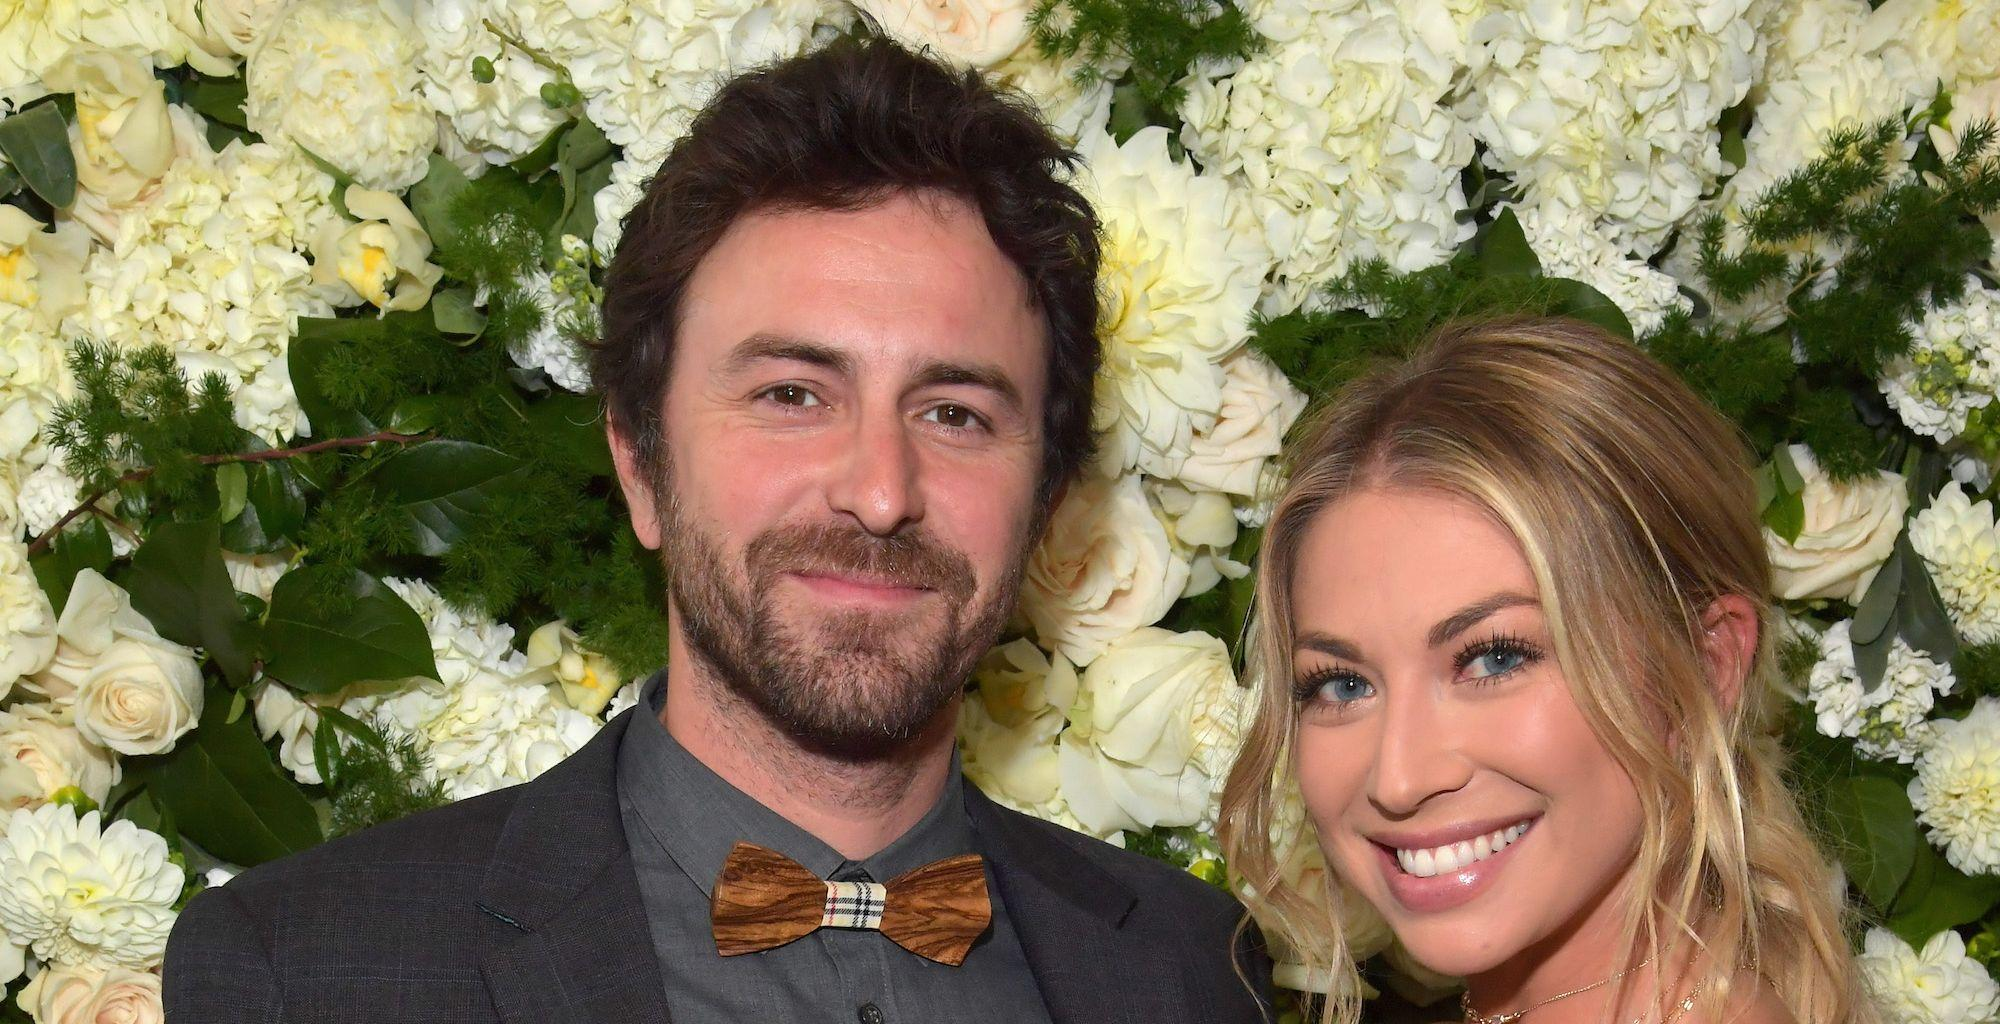 Stassi Schroeder Opens Up About Her Upcoming Wedding - Will It Air On TV?